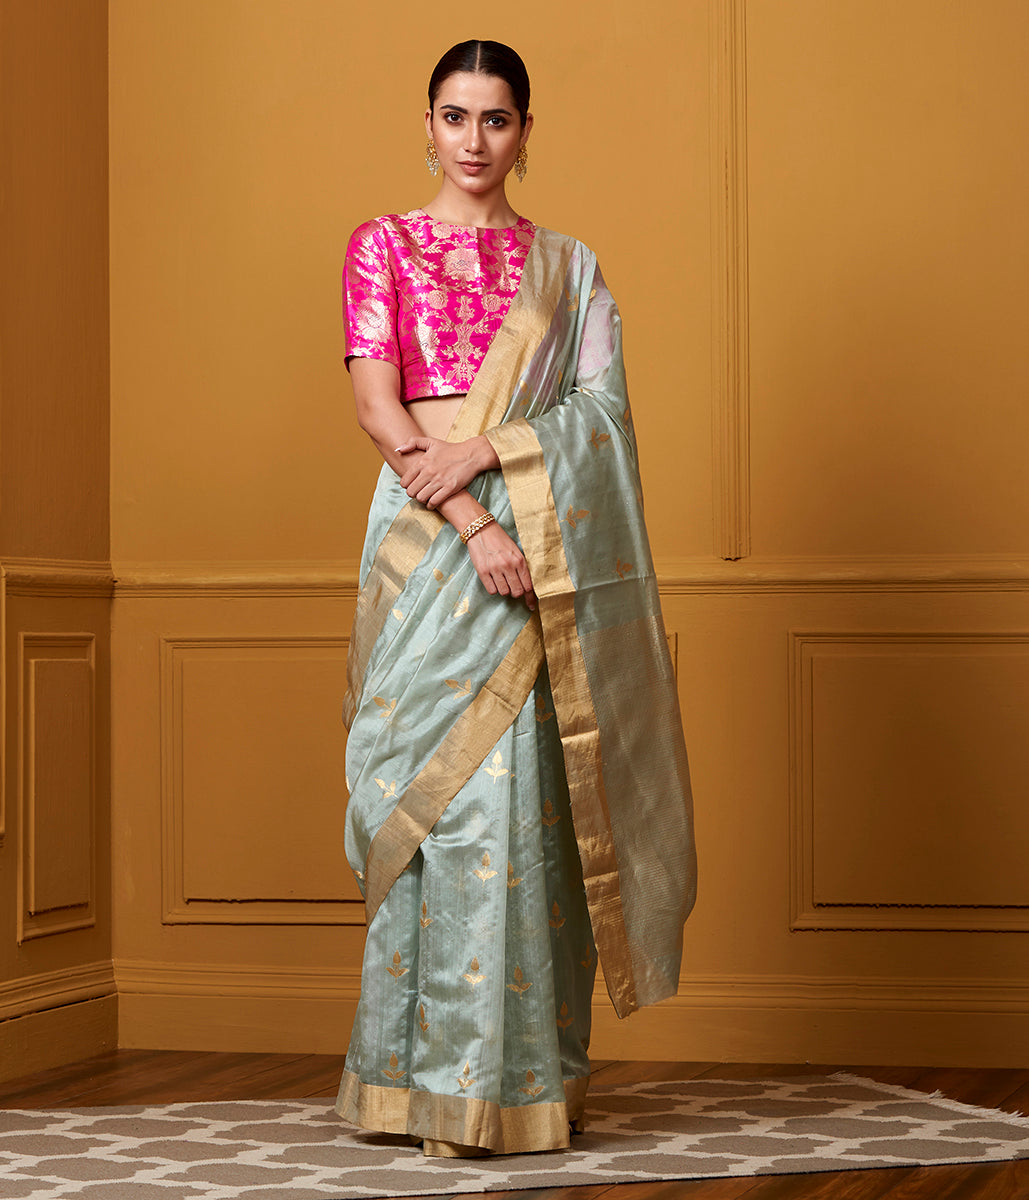 Handwoven Powder Blue Floral Motif Saree